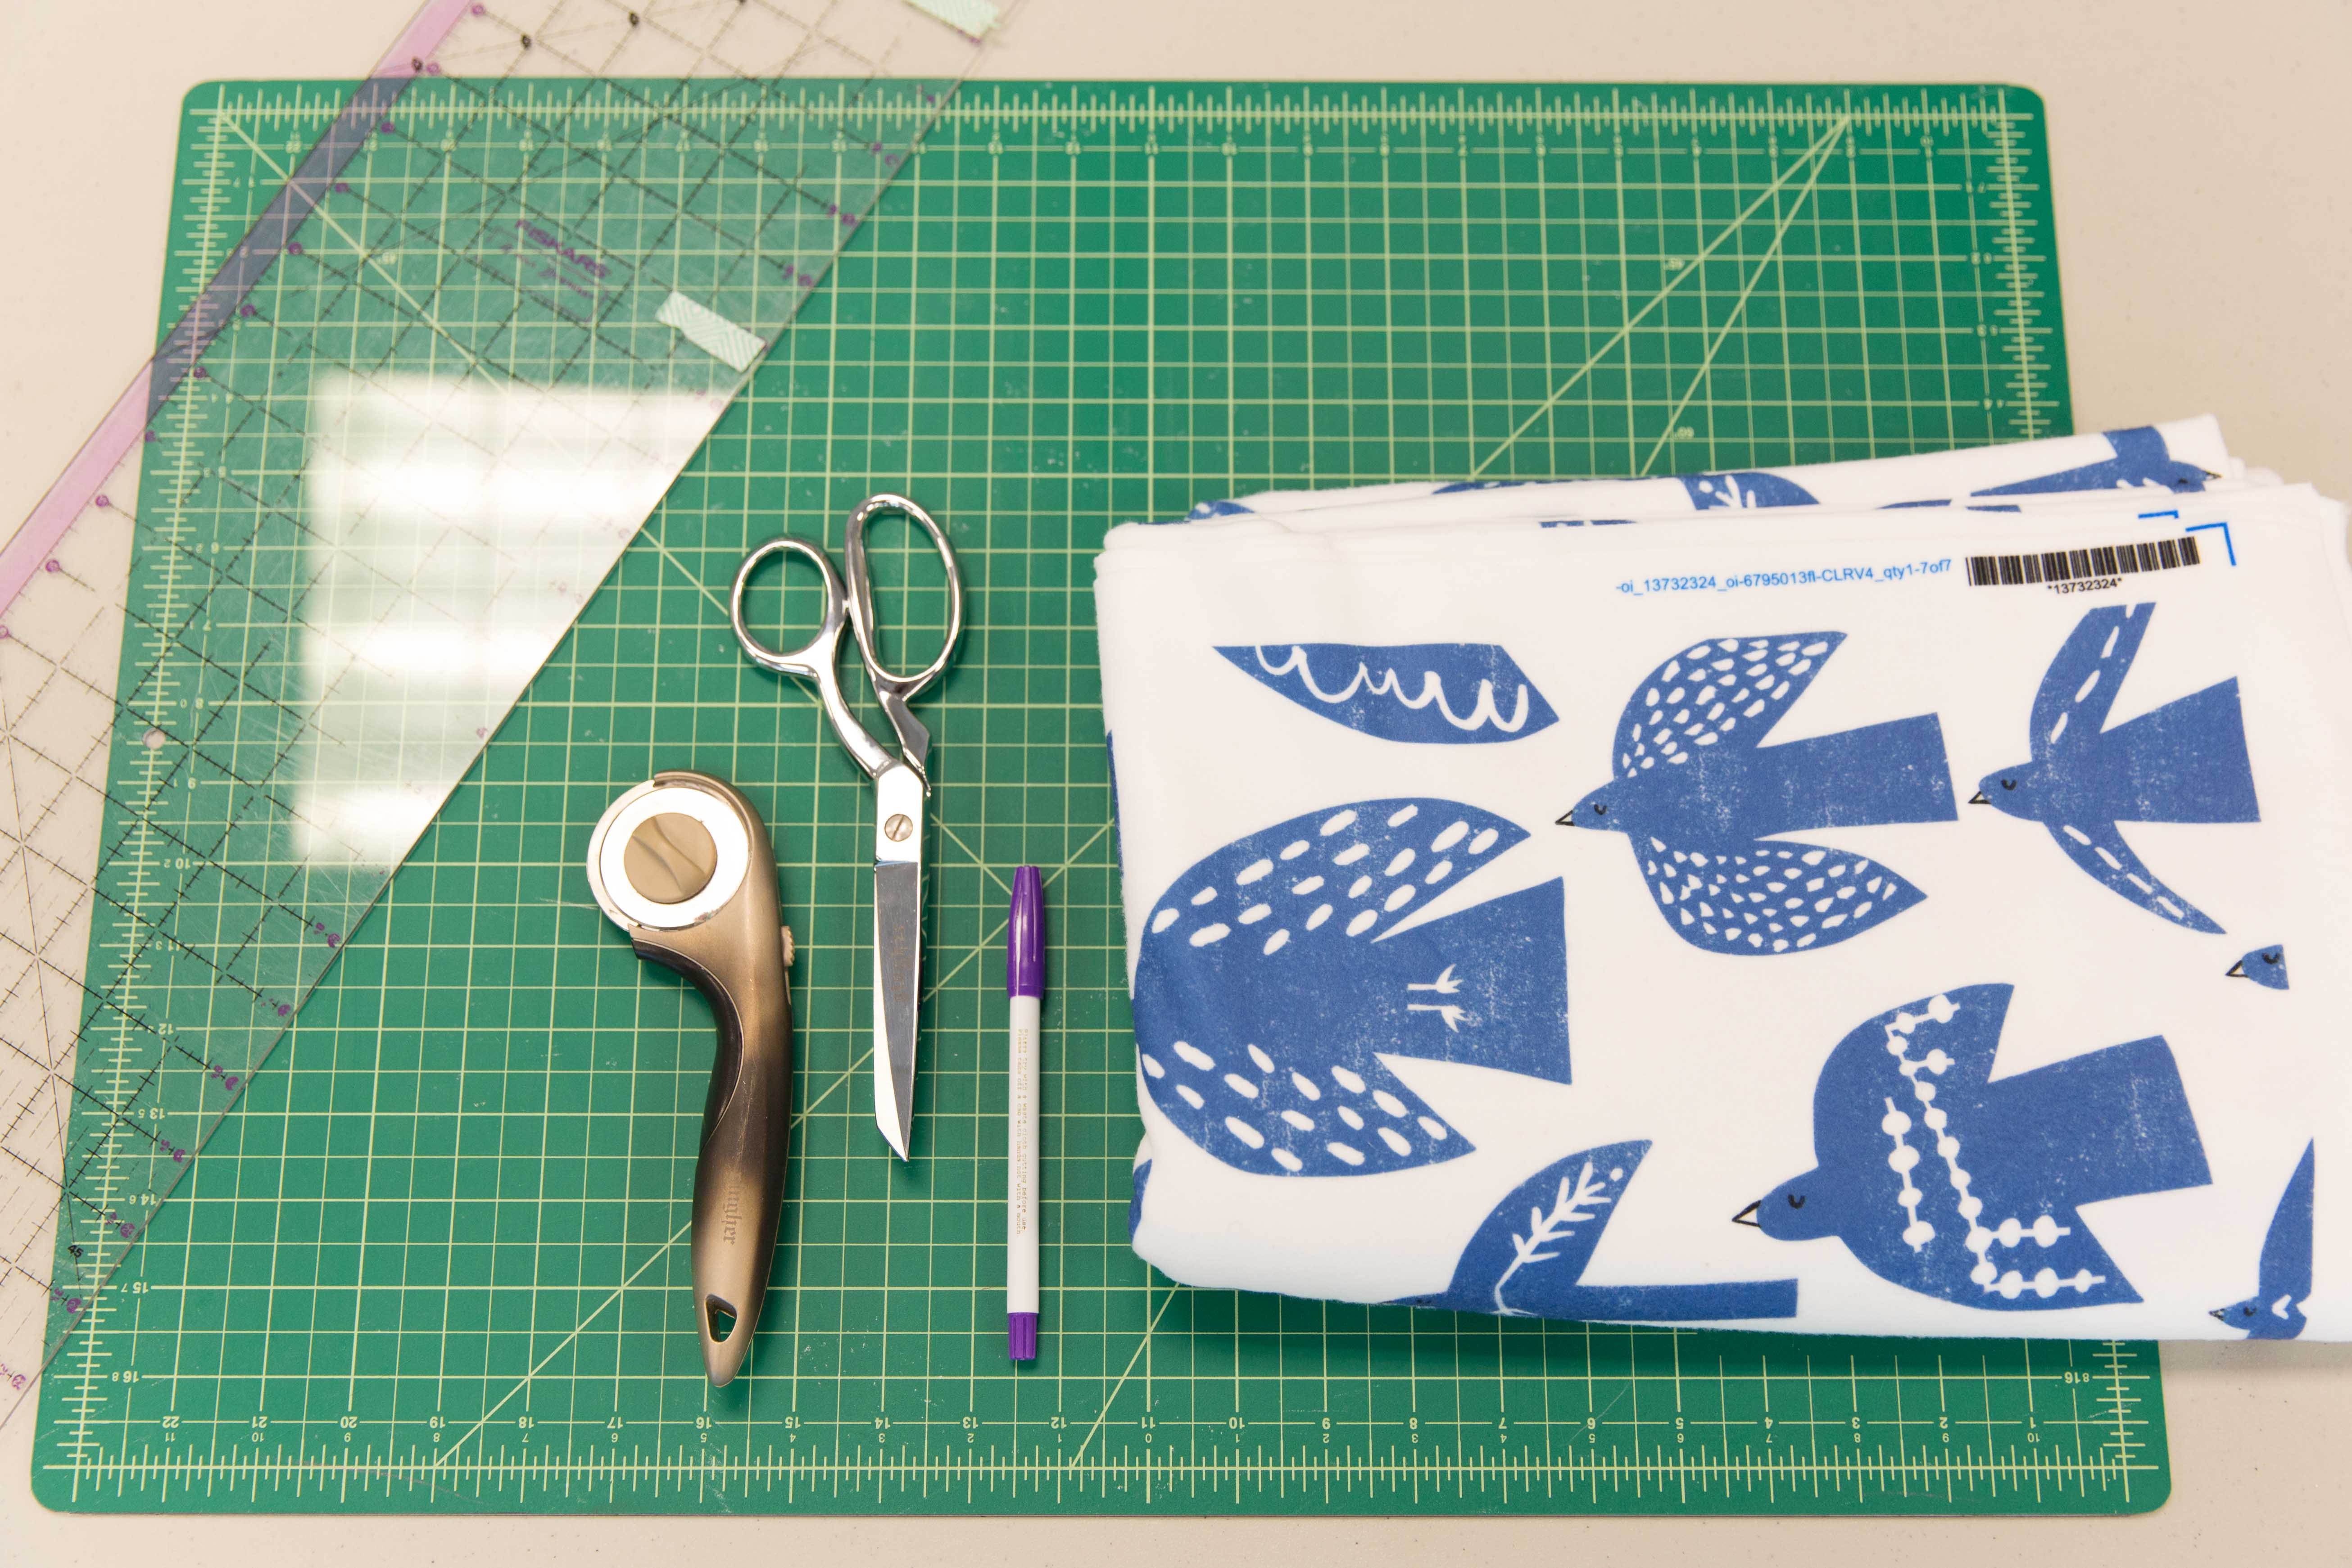 How to Make the Perfect Gift: A No-Sew Fleece Blanket | Spoonflower Blog